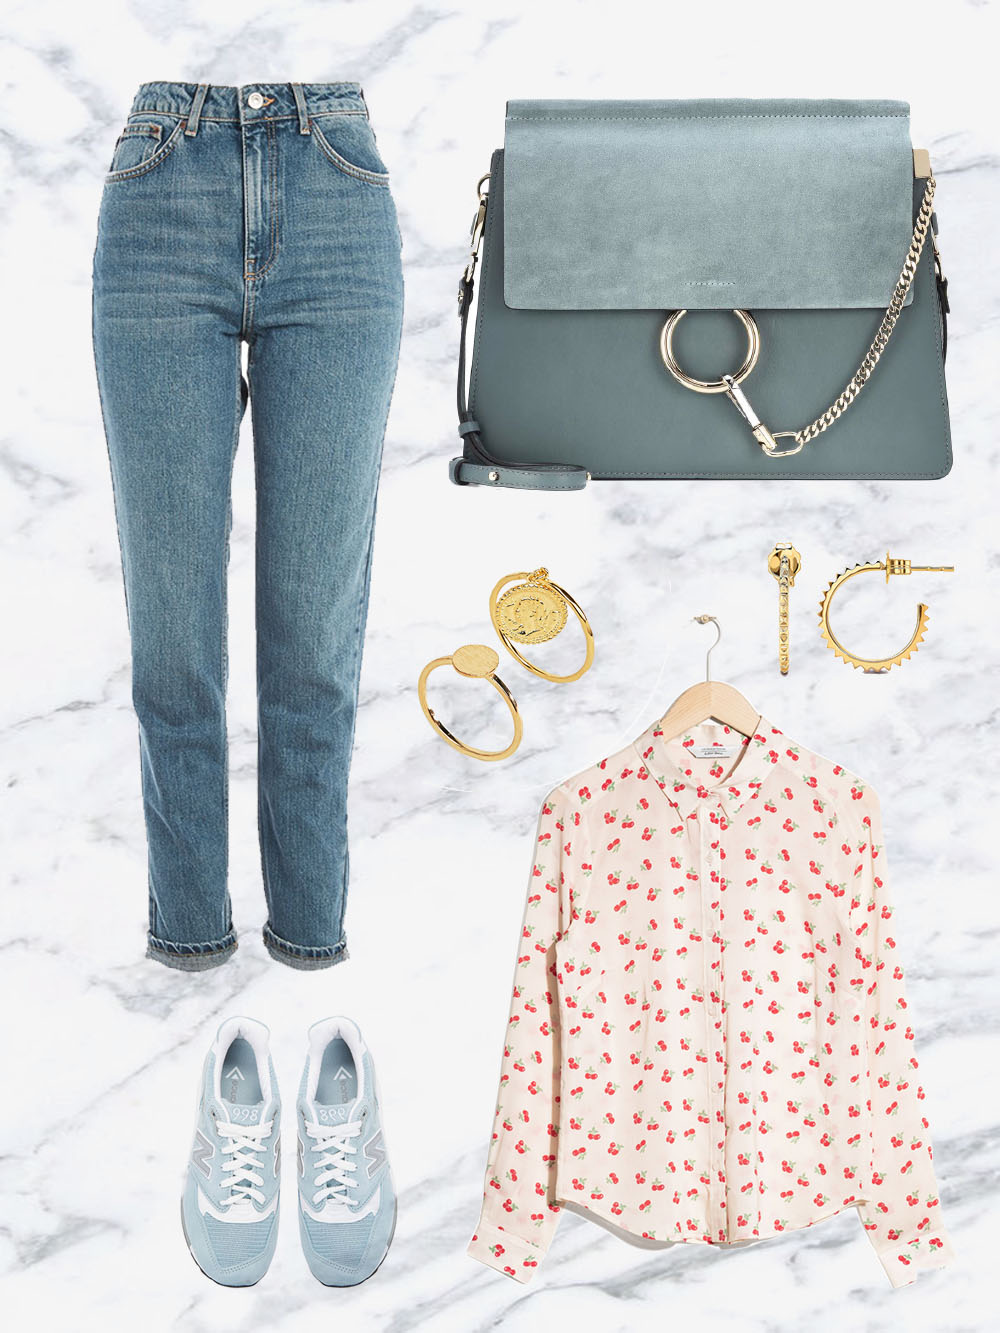 Chloe Faye Bag Outfit Ideas